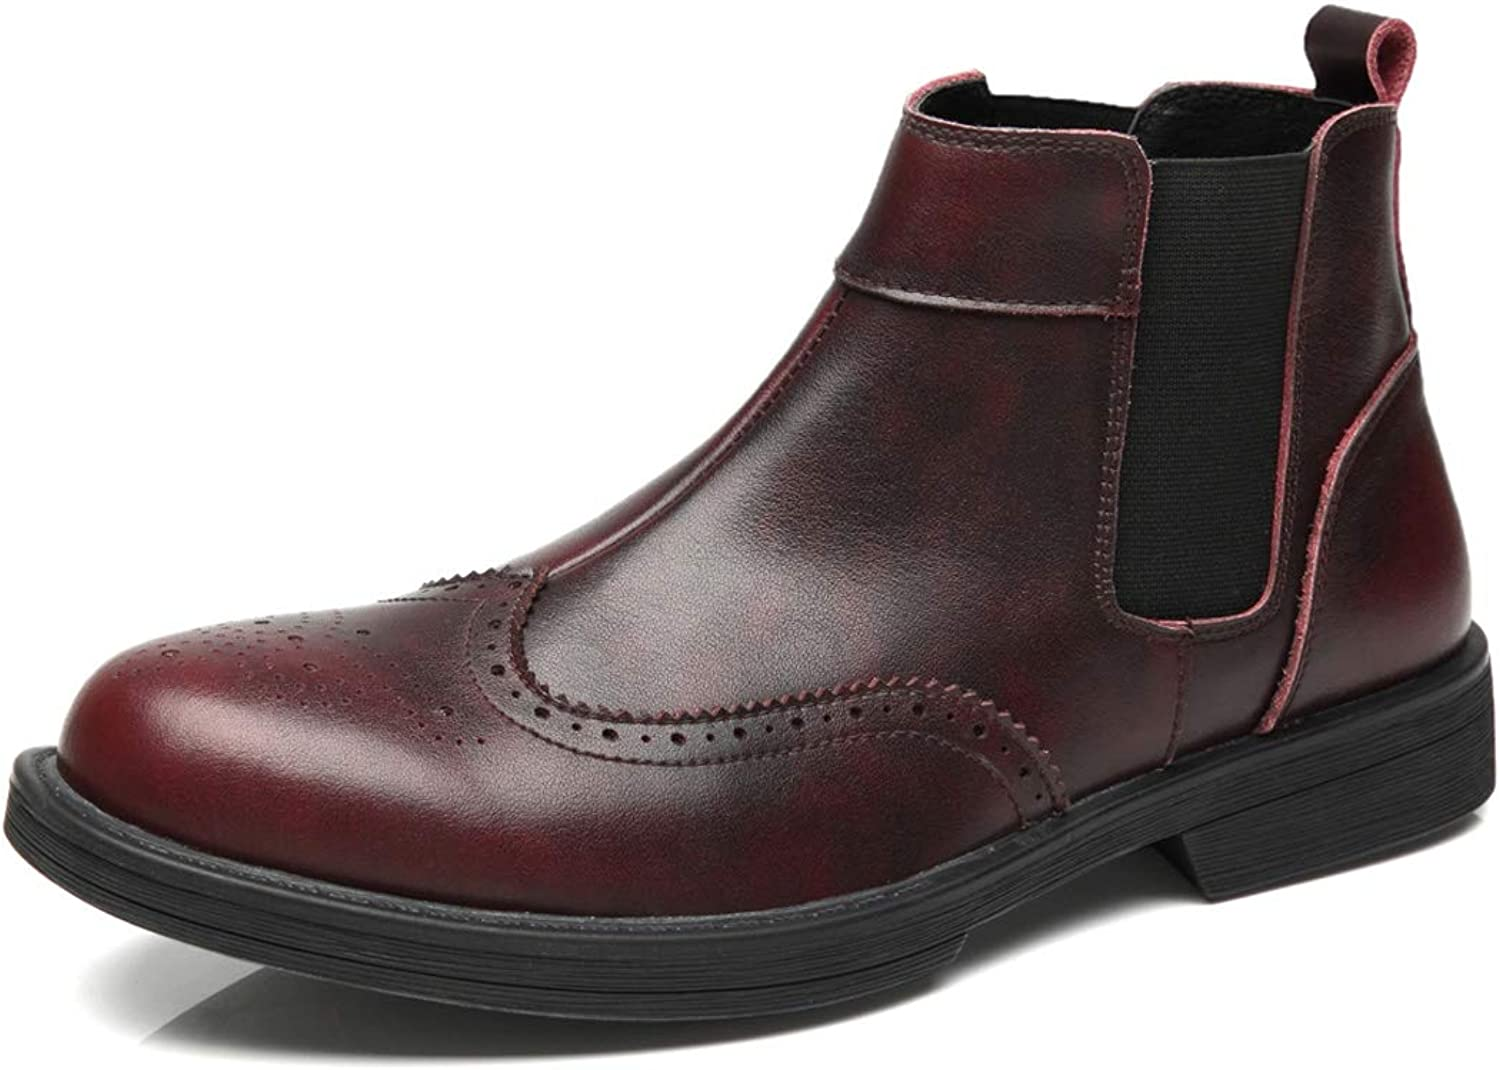 Men's shoes Martin Boots Loafers Carved England Style Boots